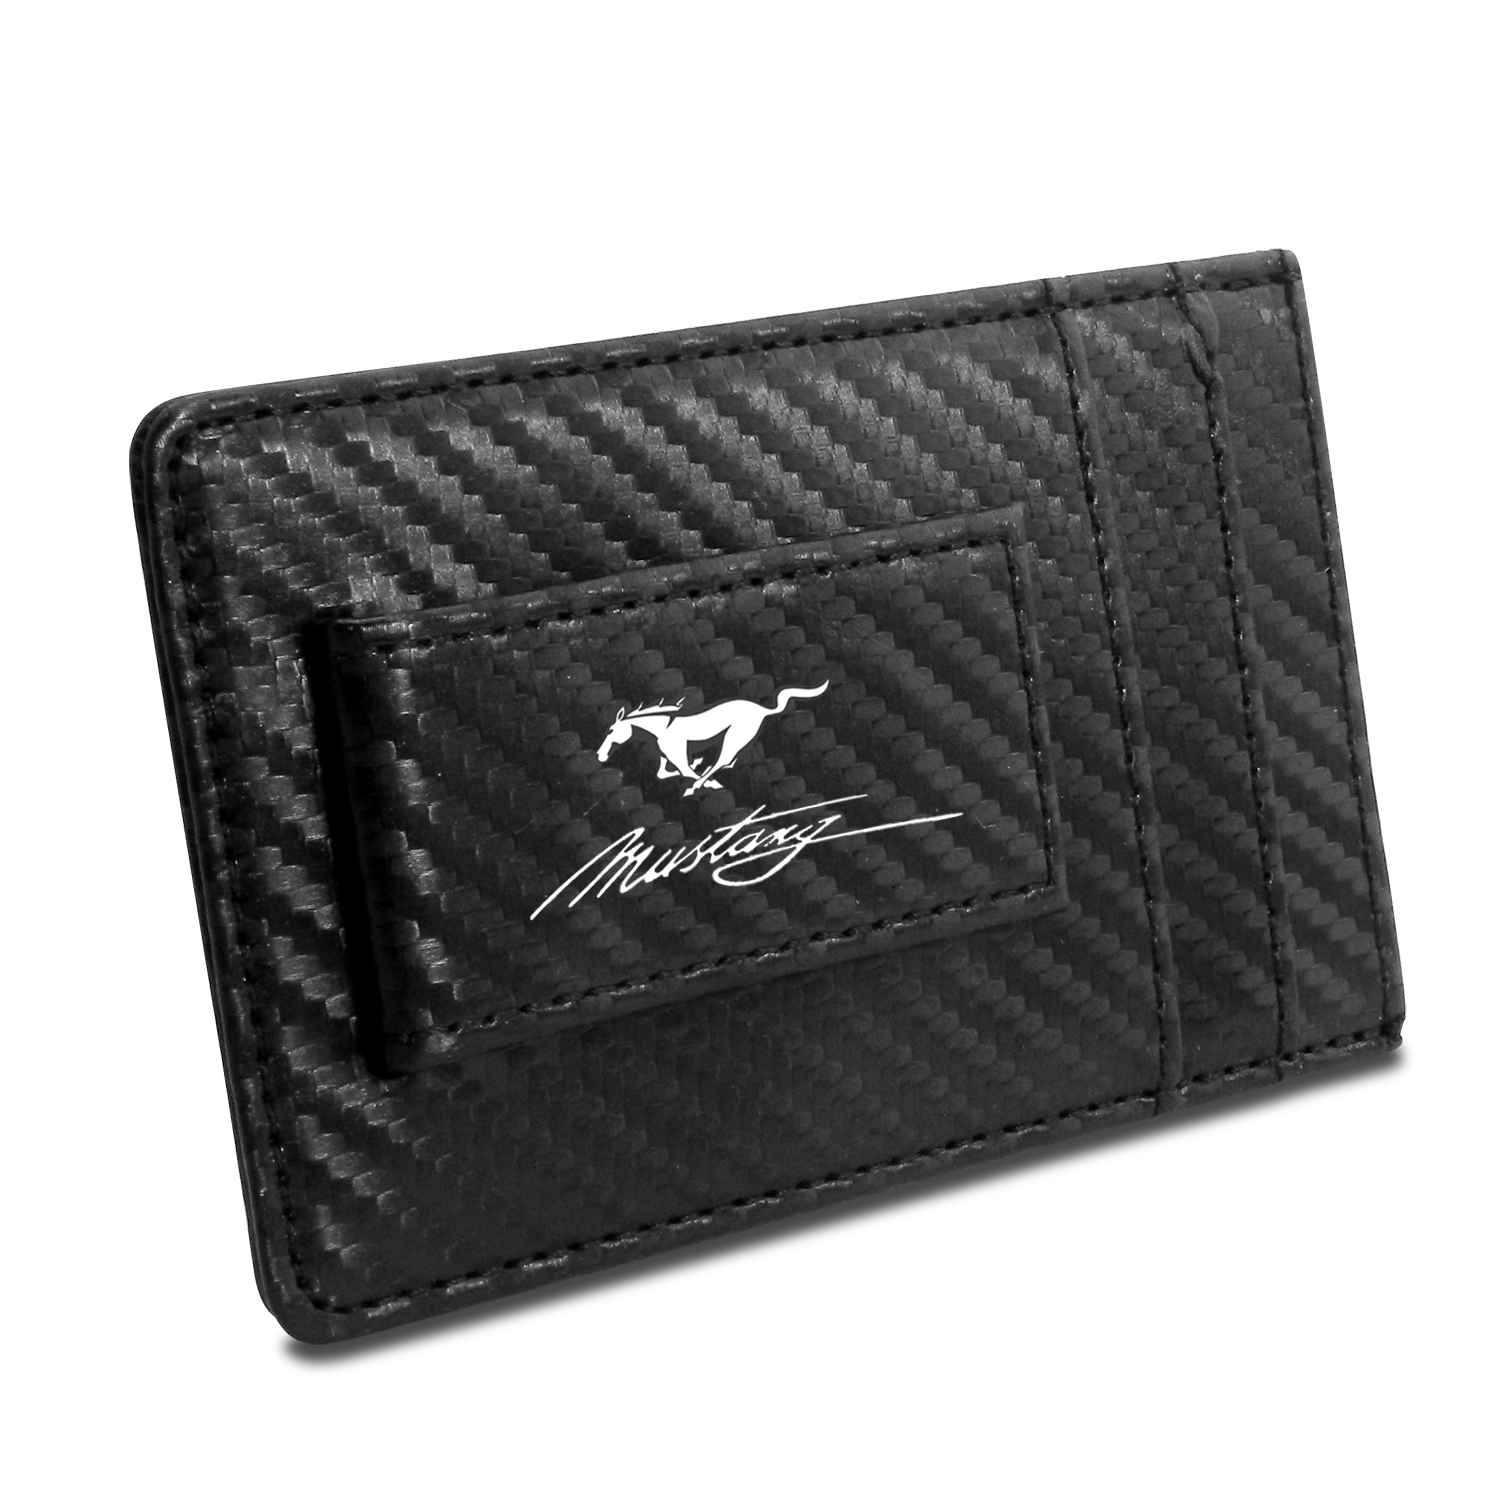 Ford Mustang Script Black Carbon Fiber RFID Card Holder Wallet